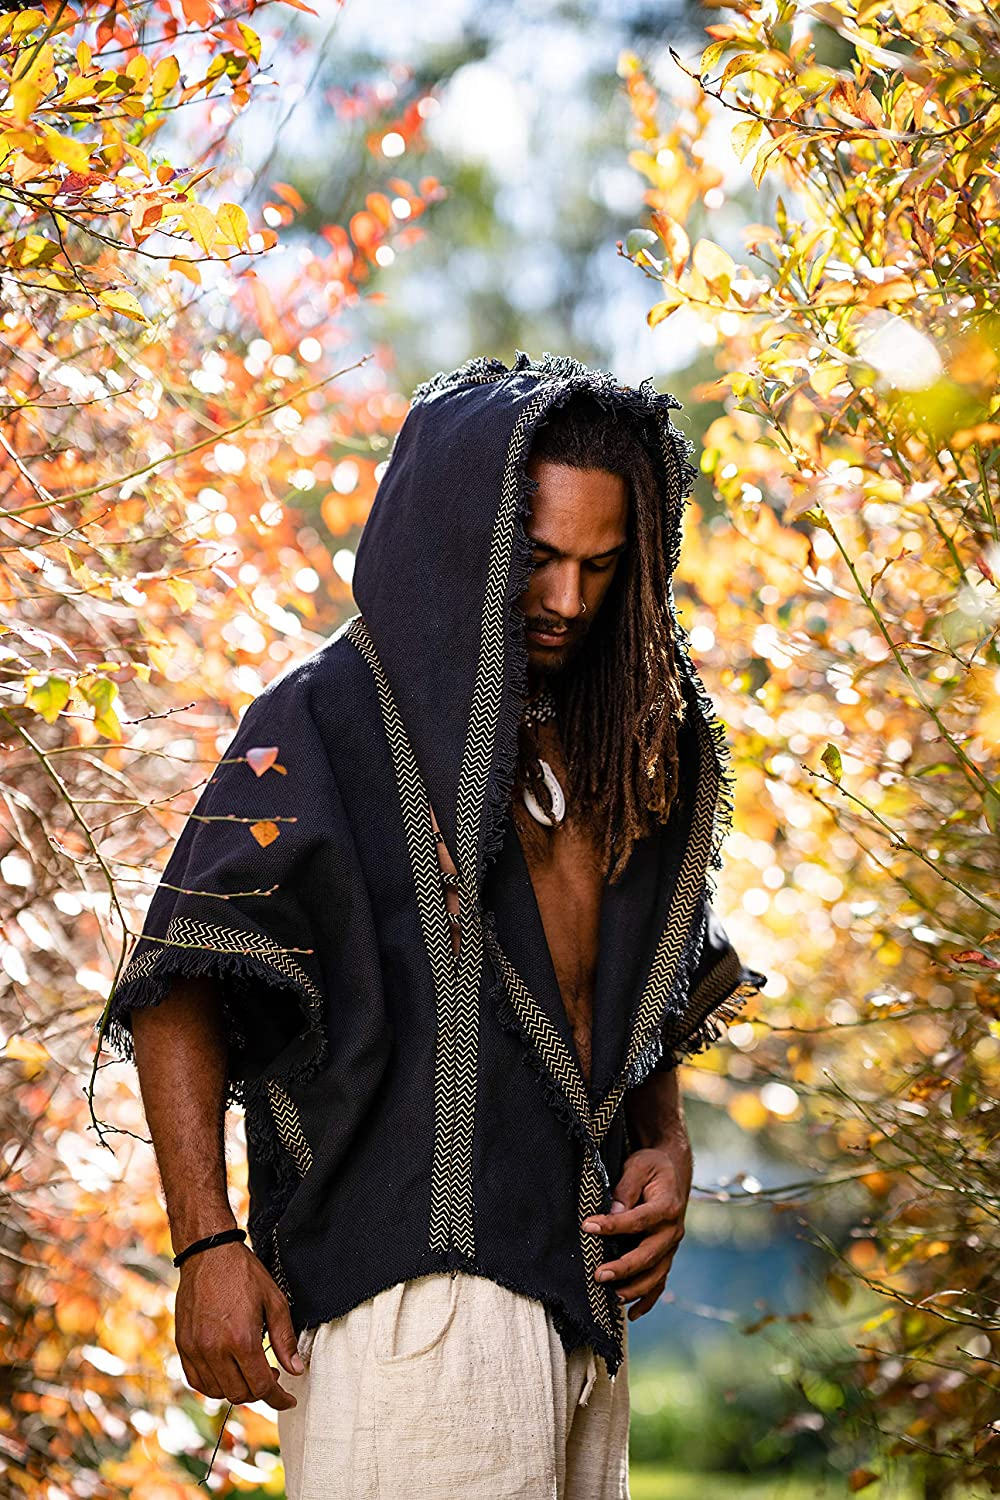 AJJAYA Handmade Mens Cashmere Wool Black Hooded Poncho with Two Pockets and Ethnic Embroidery Mexican Primitive